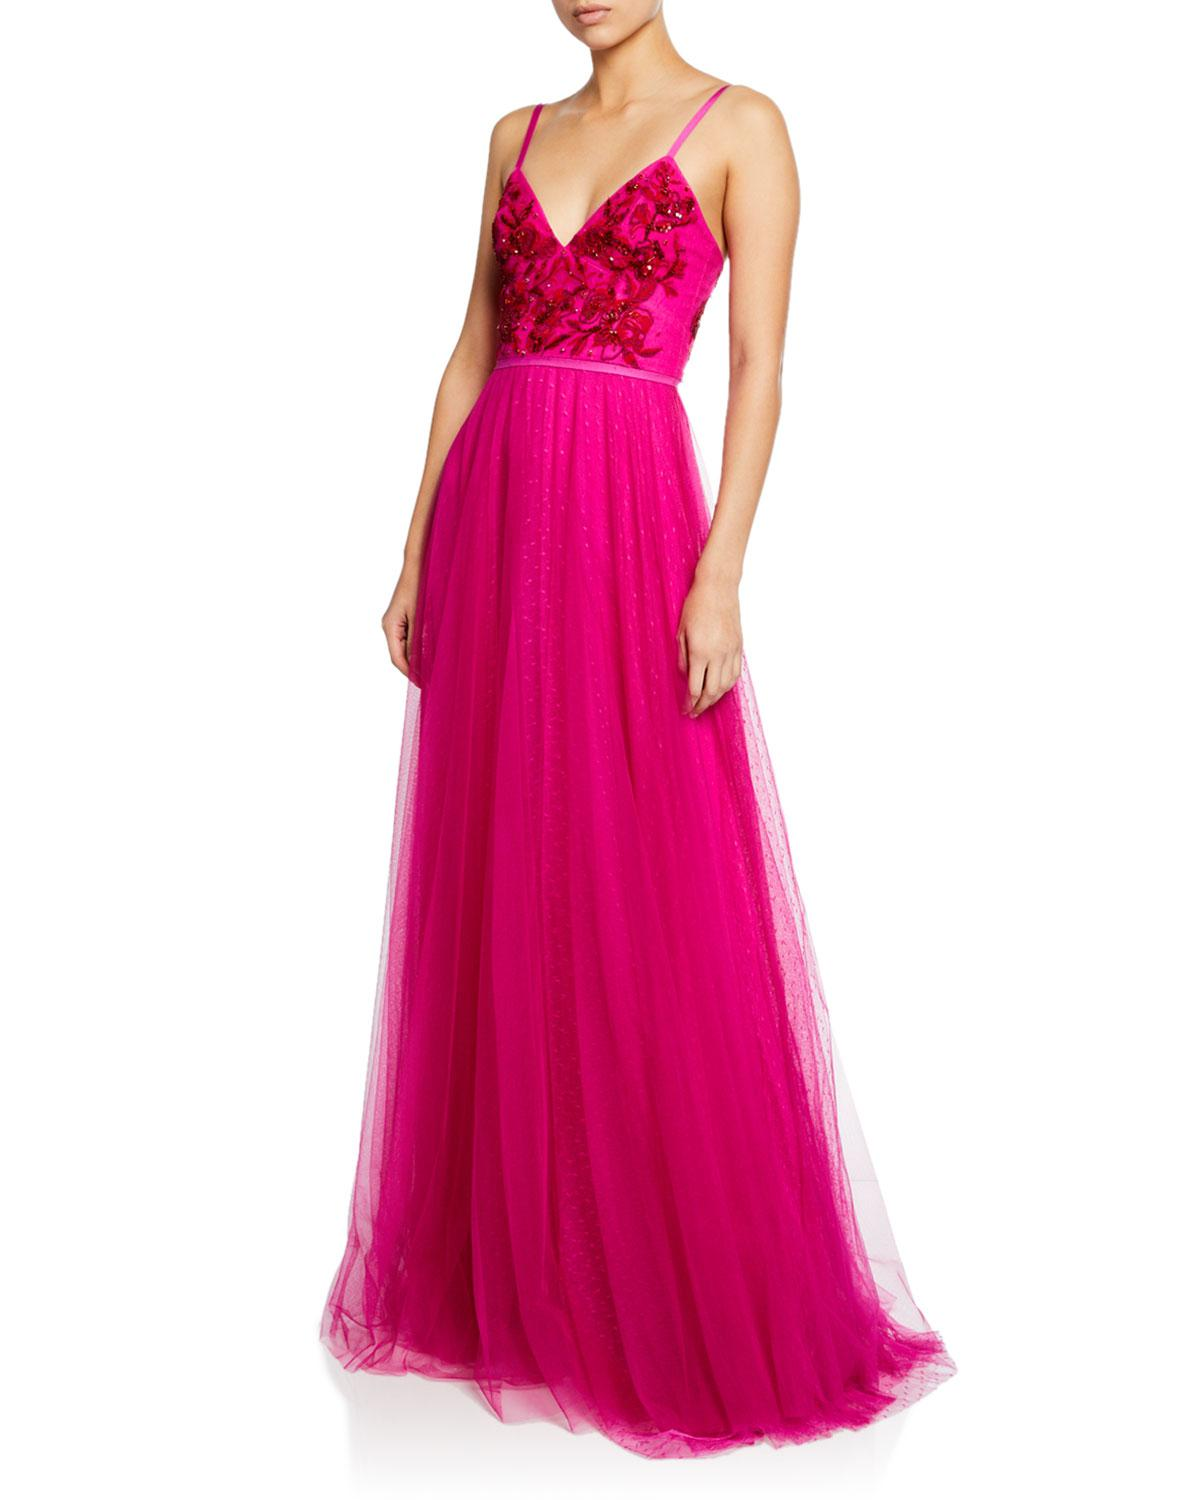 8e2d81265e Lyst - Marchesa notte Strapless Beaded Embroidered Gown in Pink